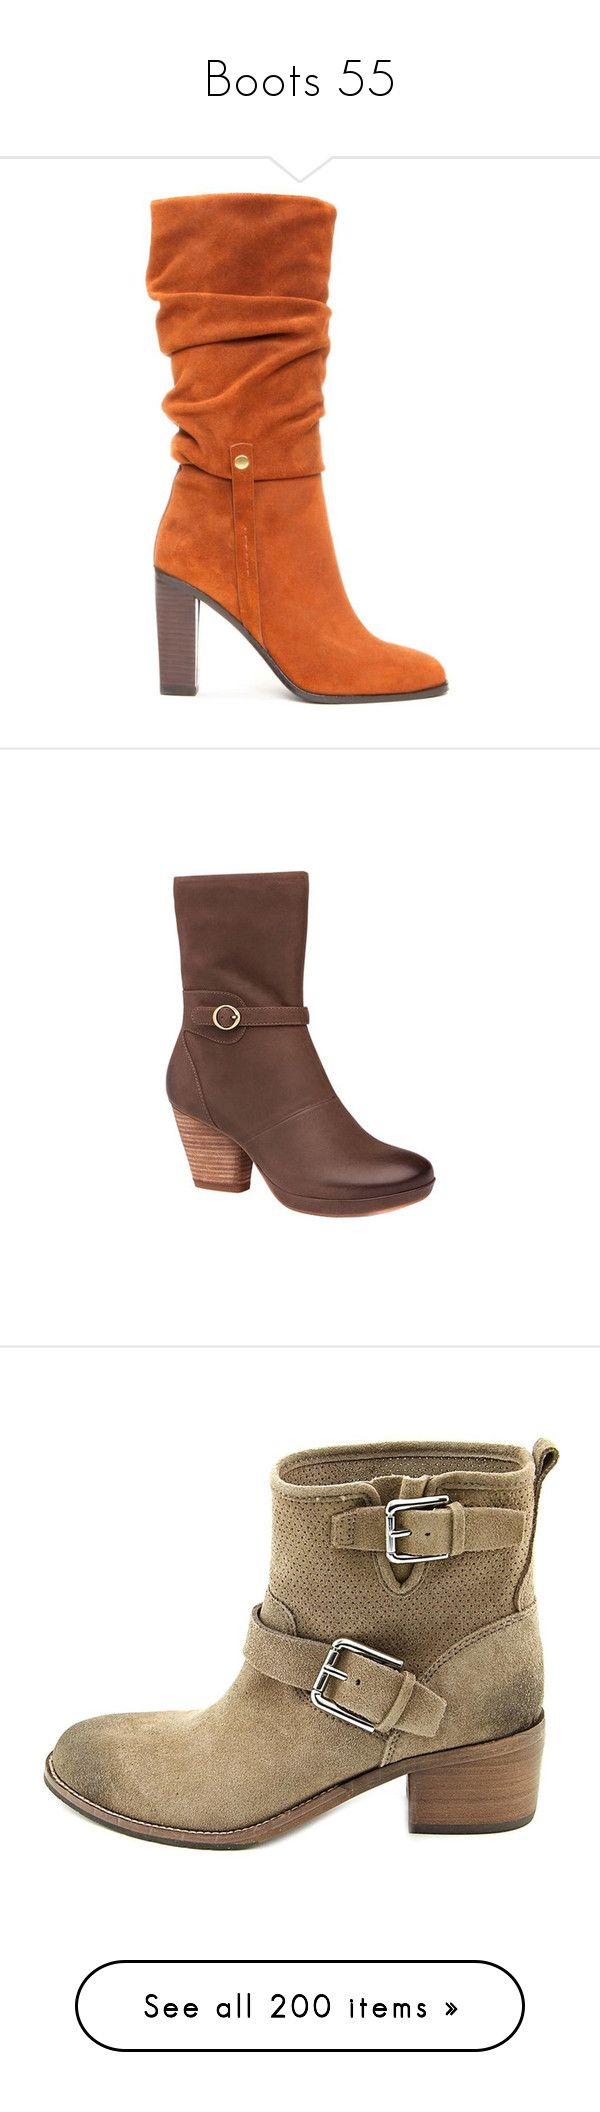 """""""Boots 55"""" by xx-black-blade-xx ❤ liked on Polyvore featuring shoes, boots, high heel shoes, stretch boots, high heel boots, slouchy brown boots, suede slouch boots, casual, leather boots and dansko boots"""